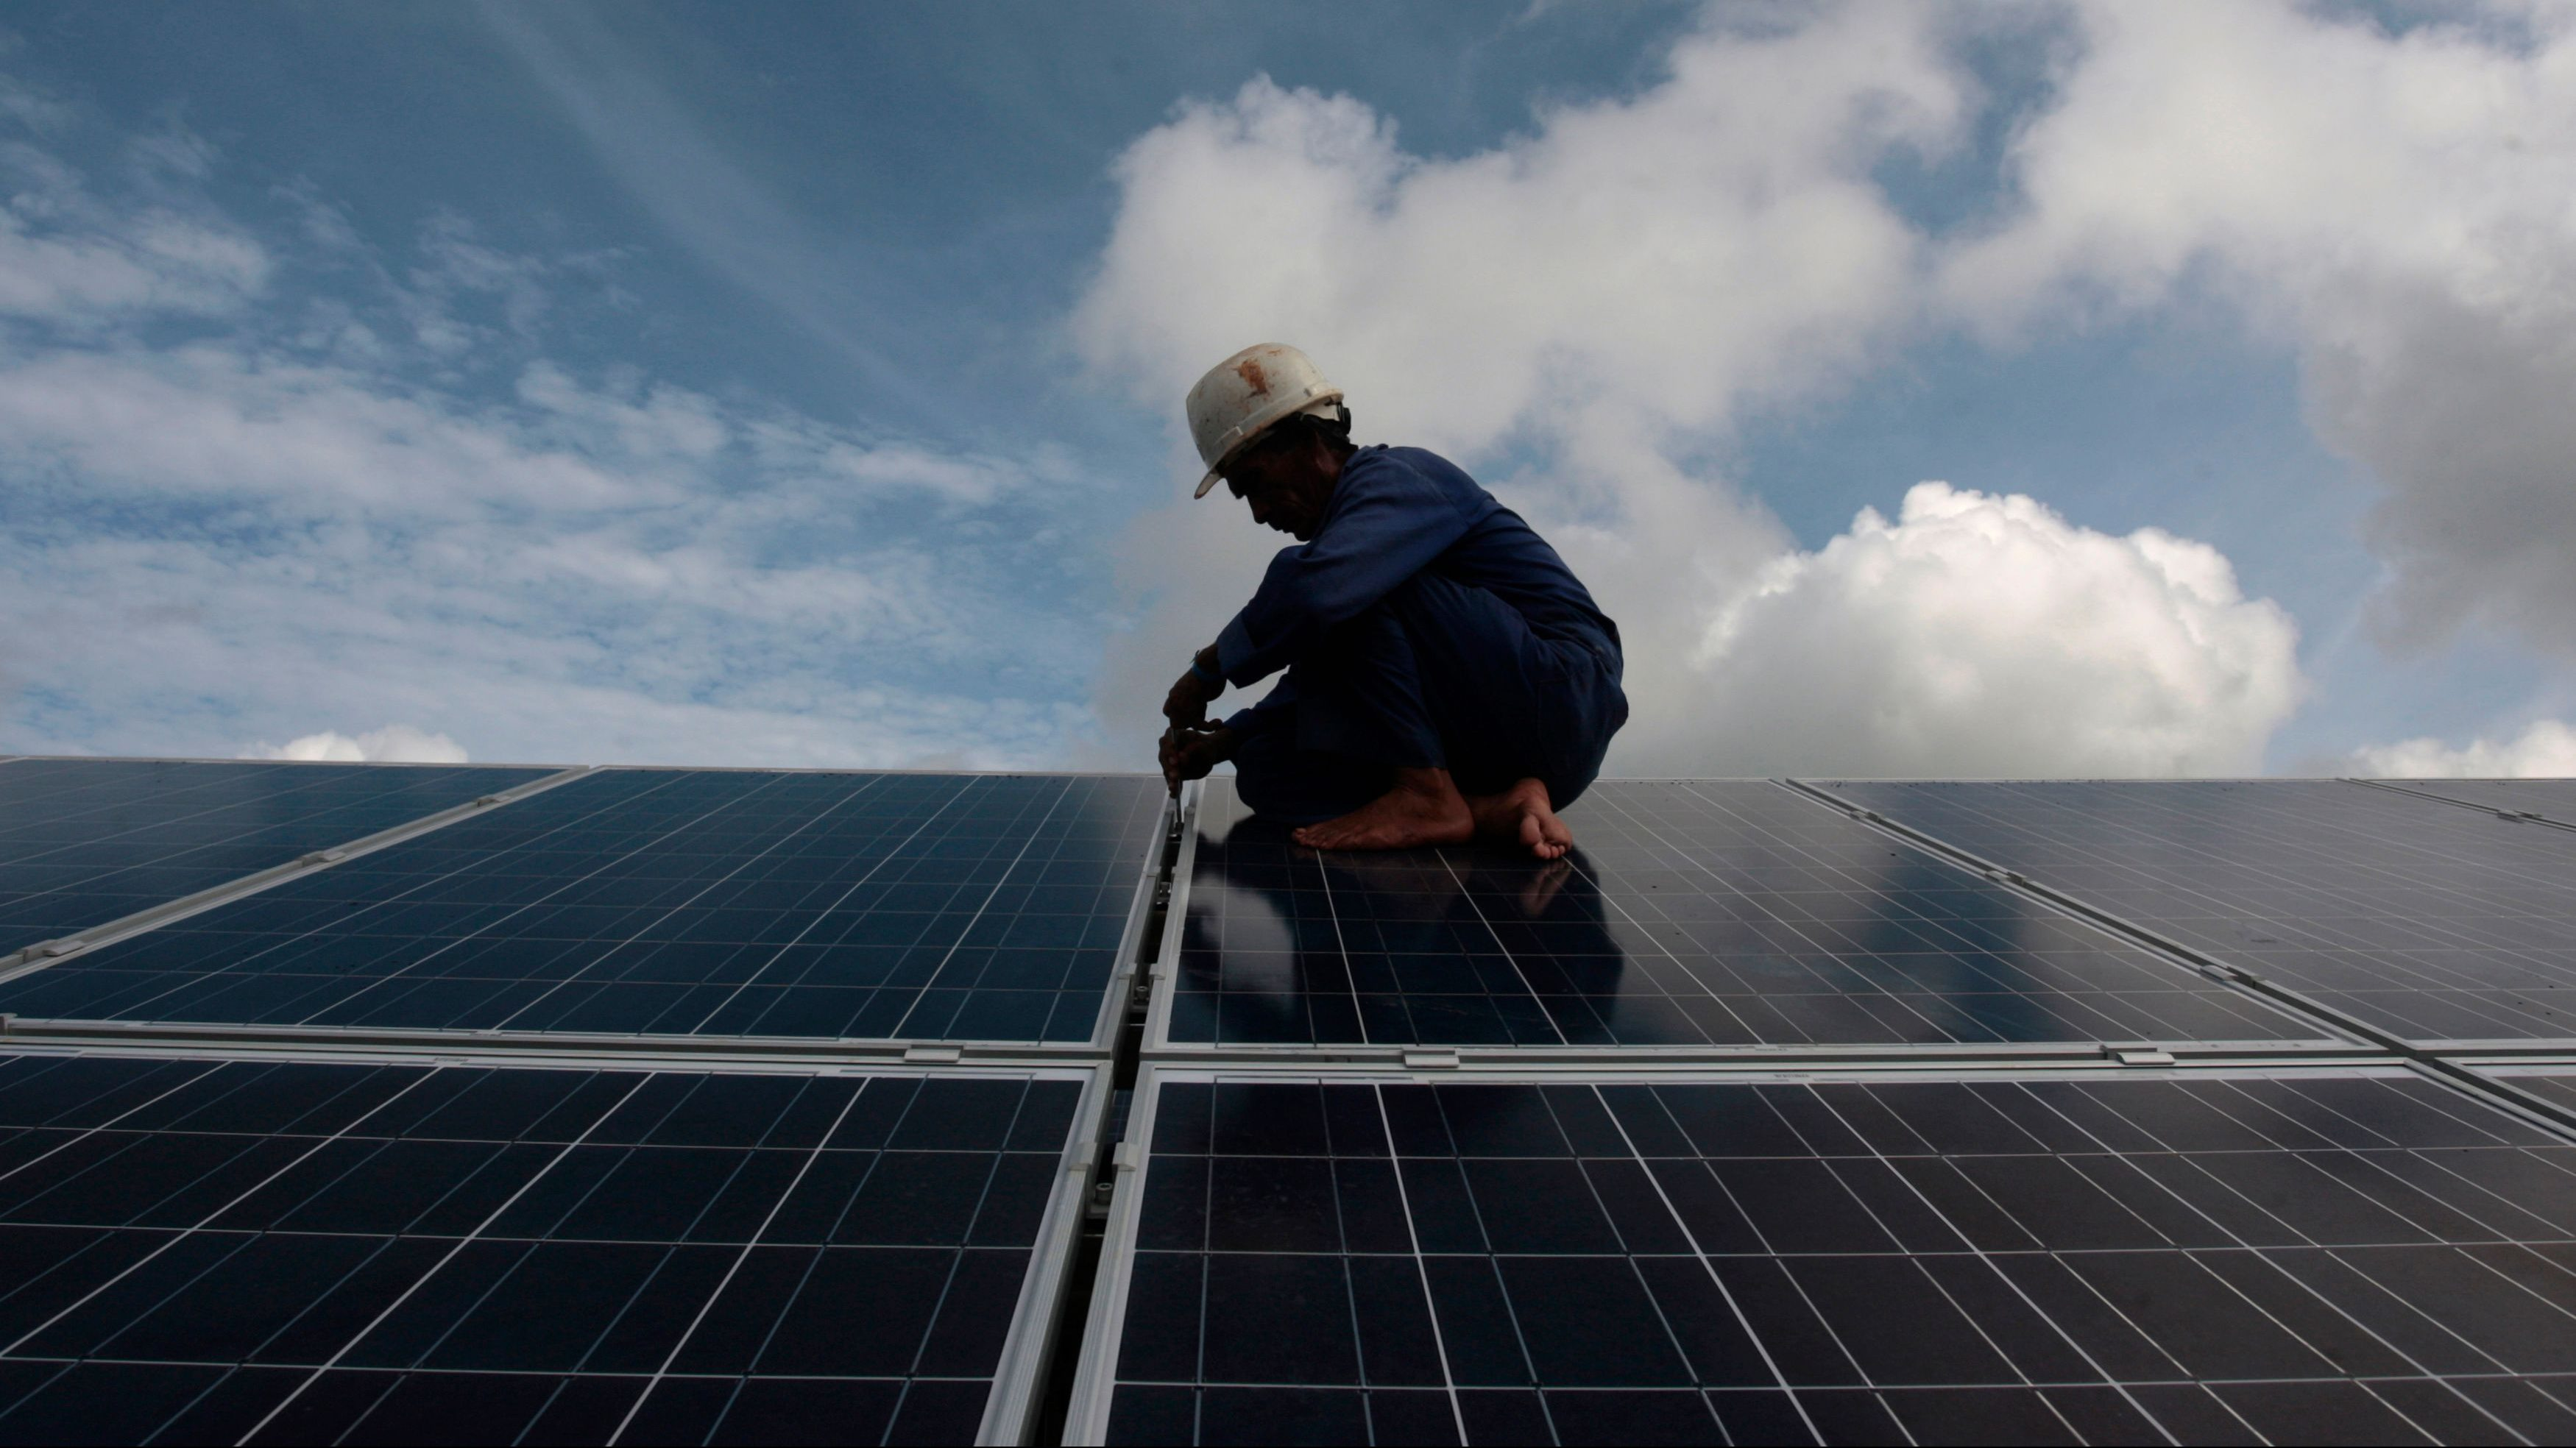 India will add a record level of solar power capacity in 2019